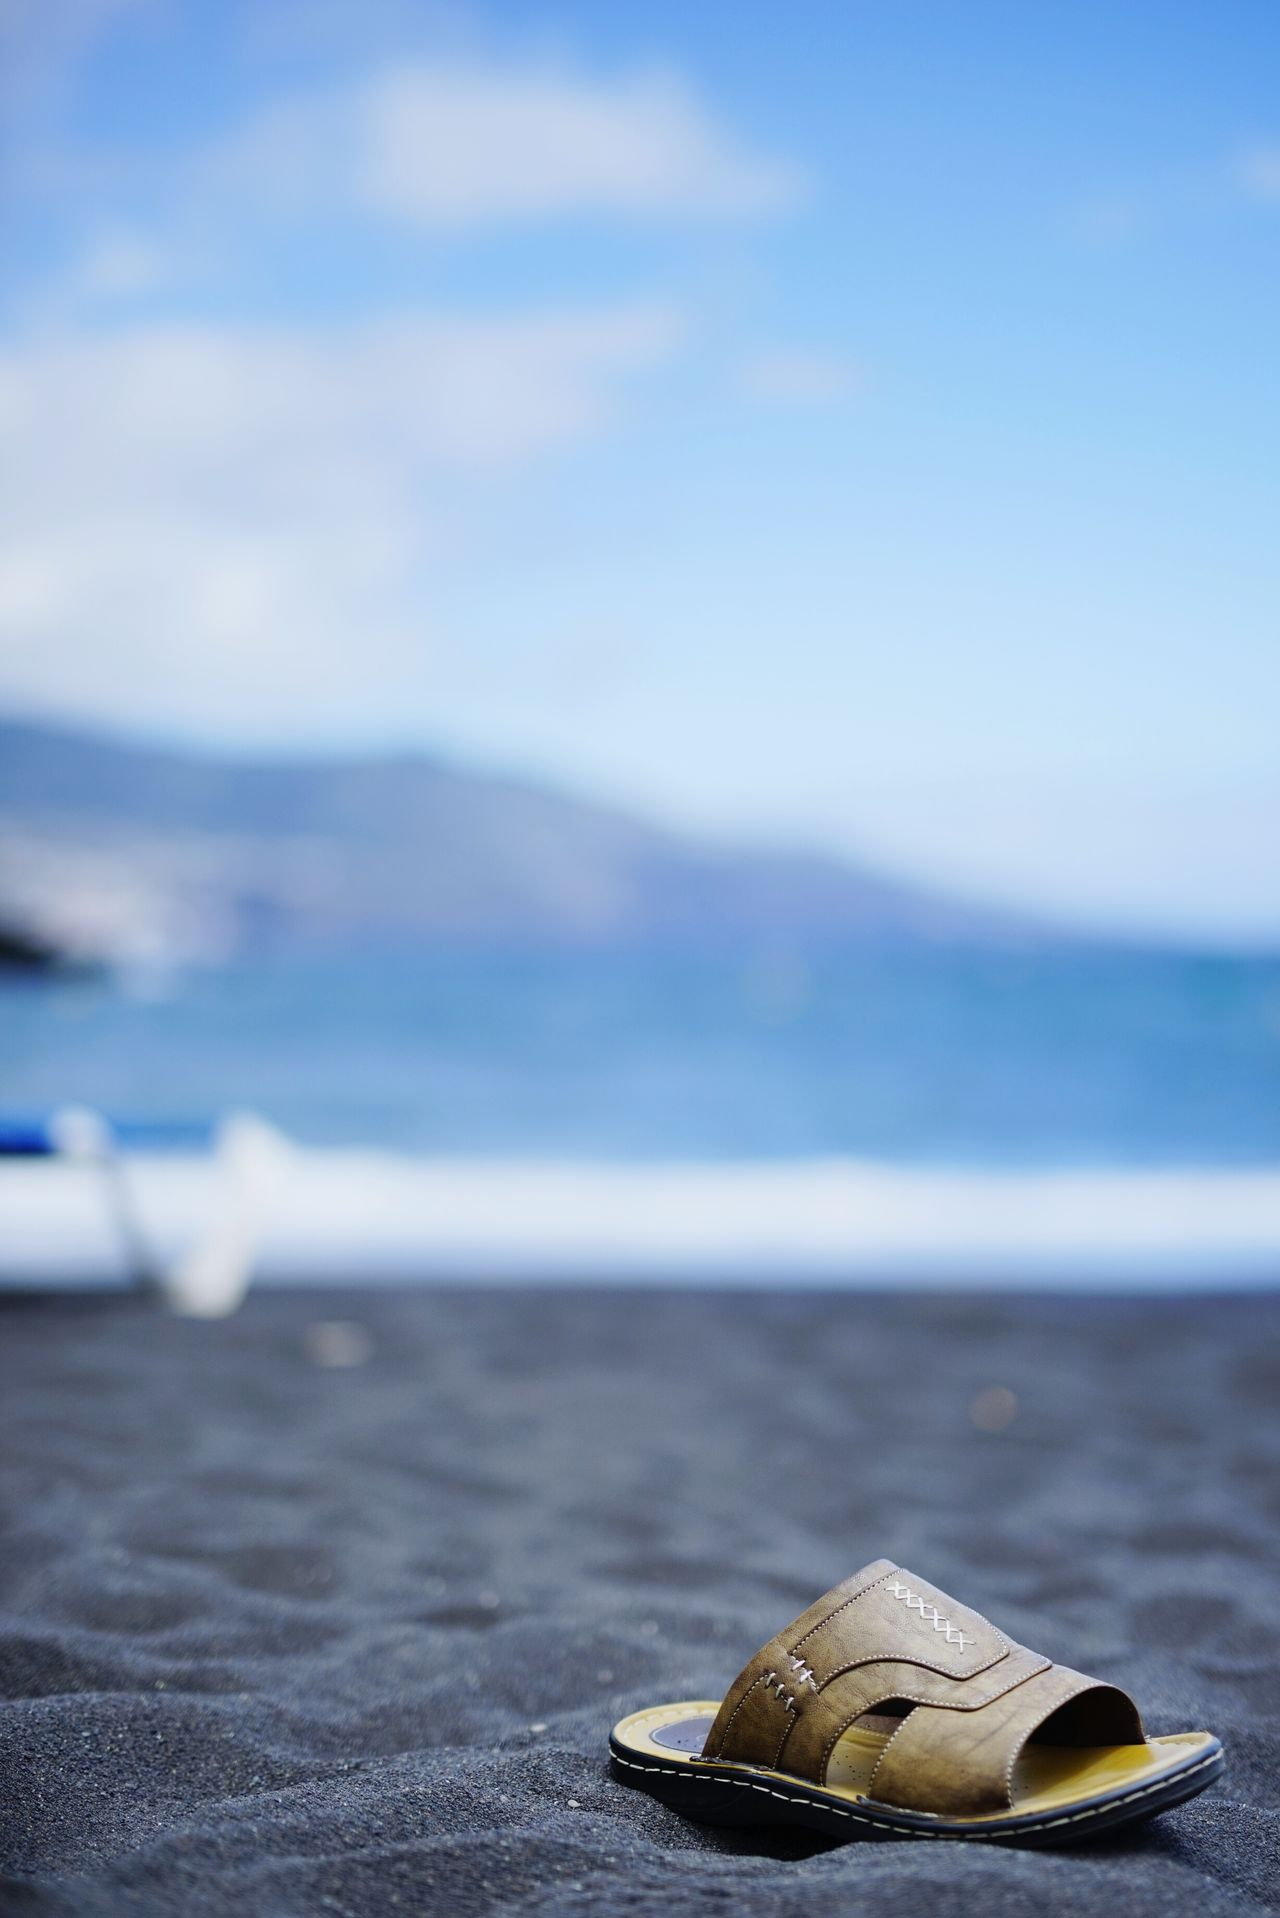 Beach Sea No People Outdoors Nature Water Day Sand Tranquility Mountain Beauty In Nature Close-up Sky sandal La Palma, Canarias